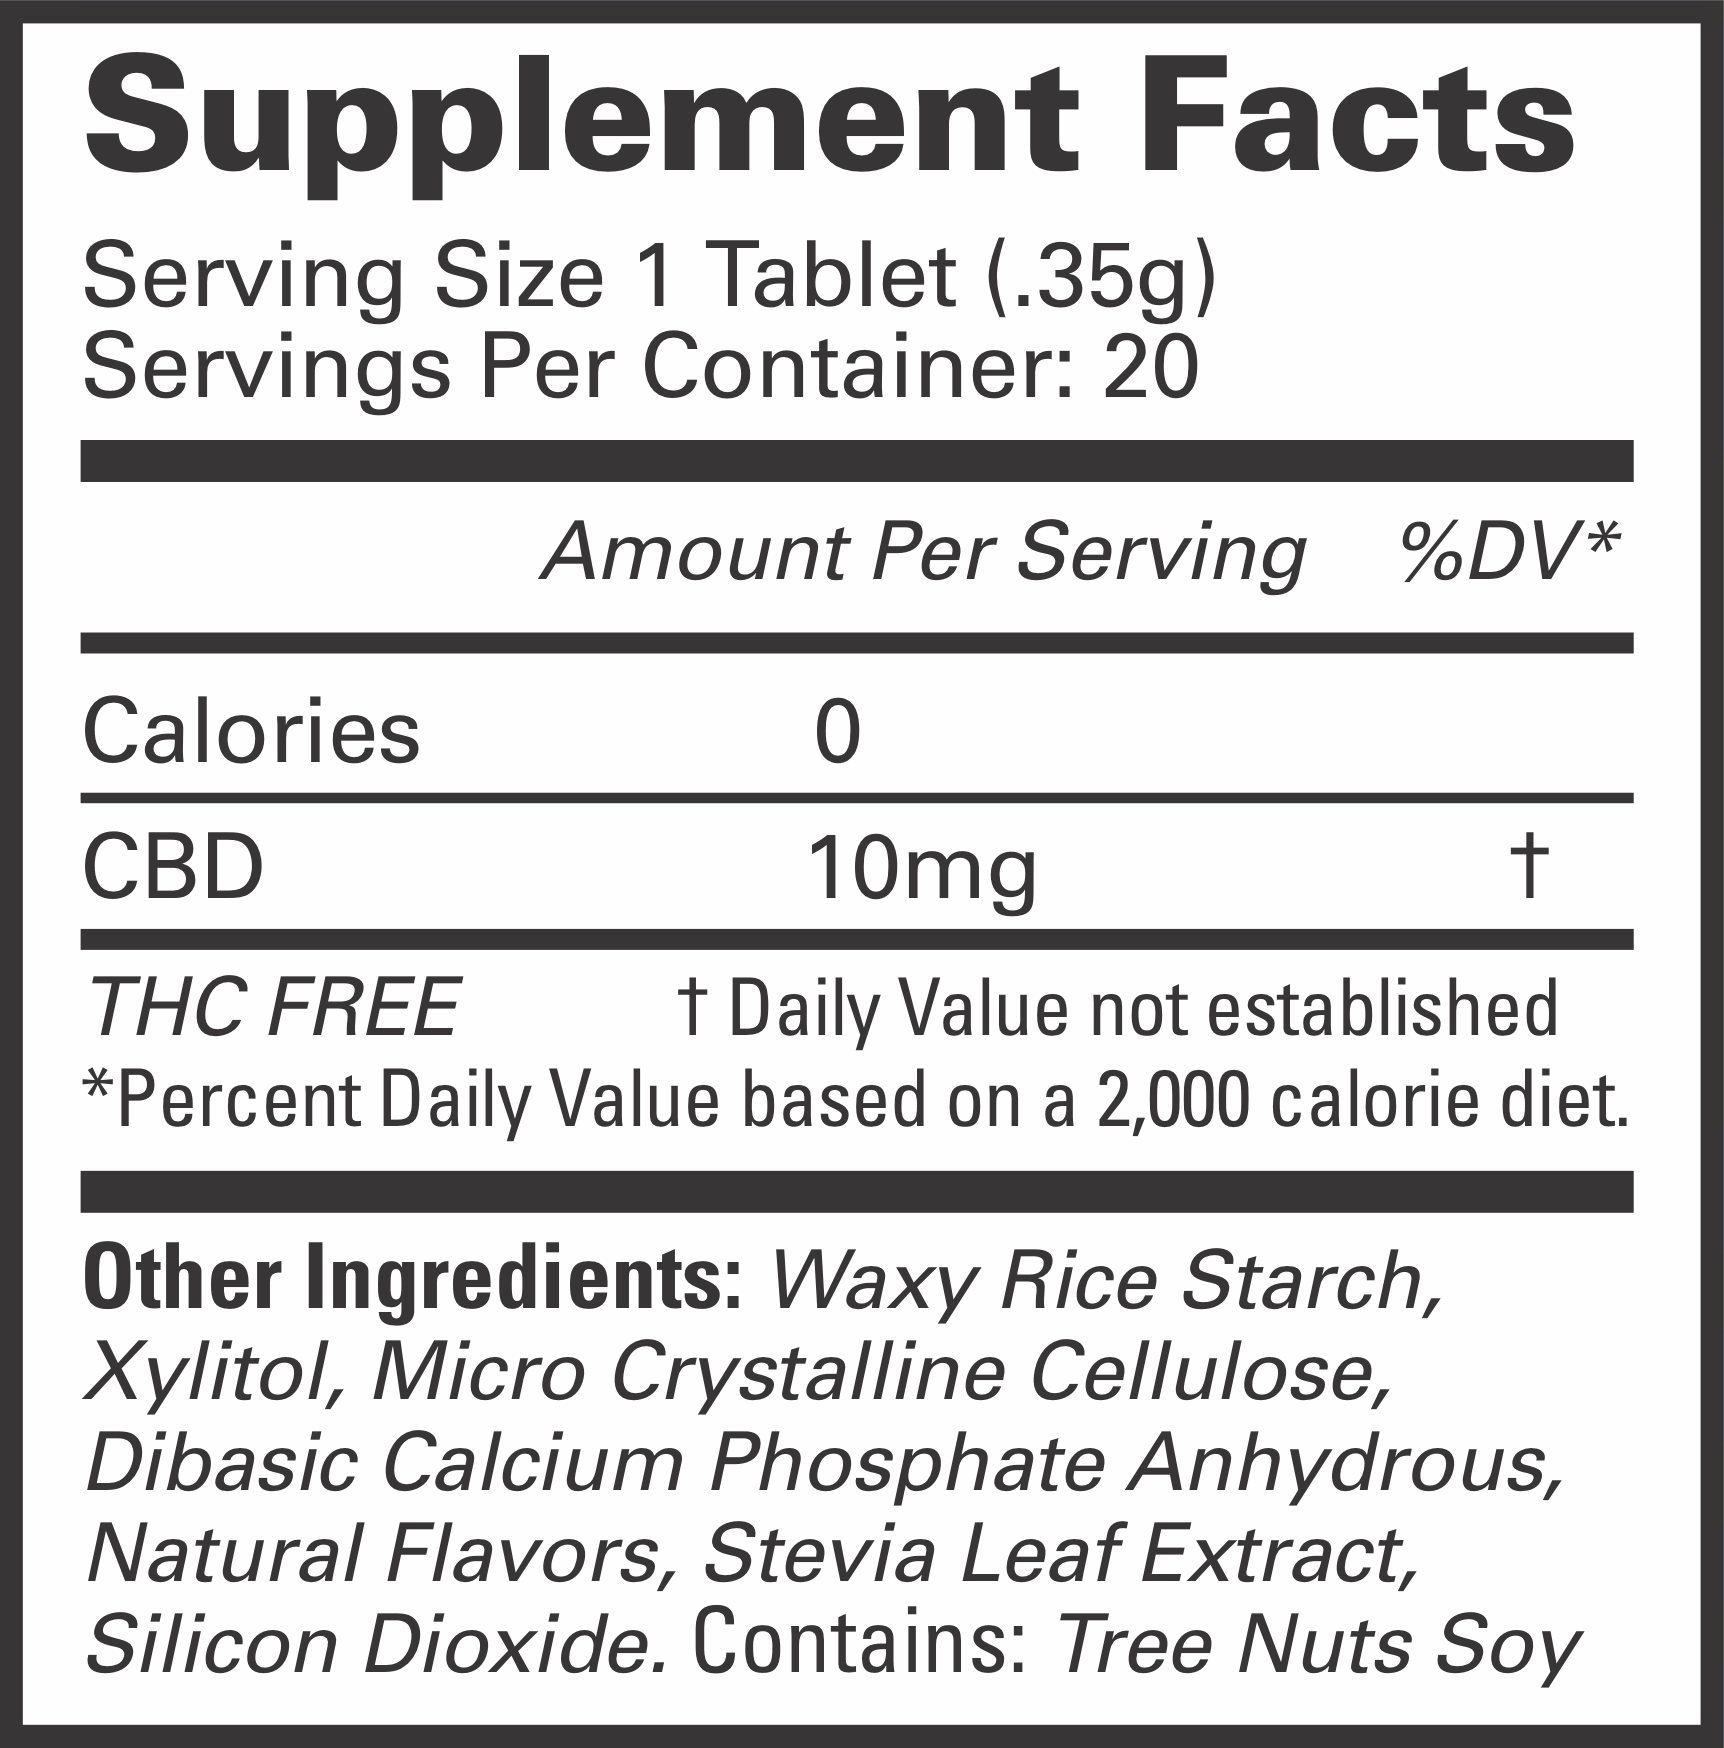 tweedle-farms-cbd-tablets-supplement-facts.png